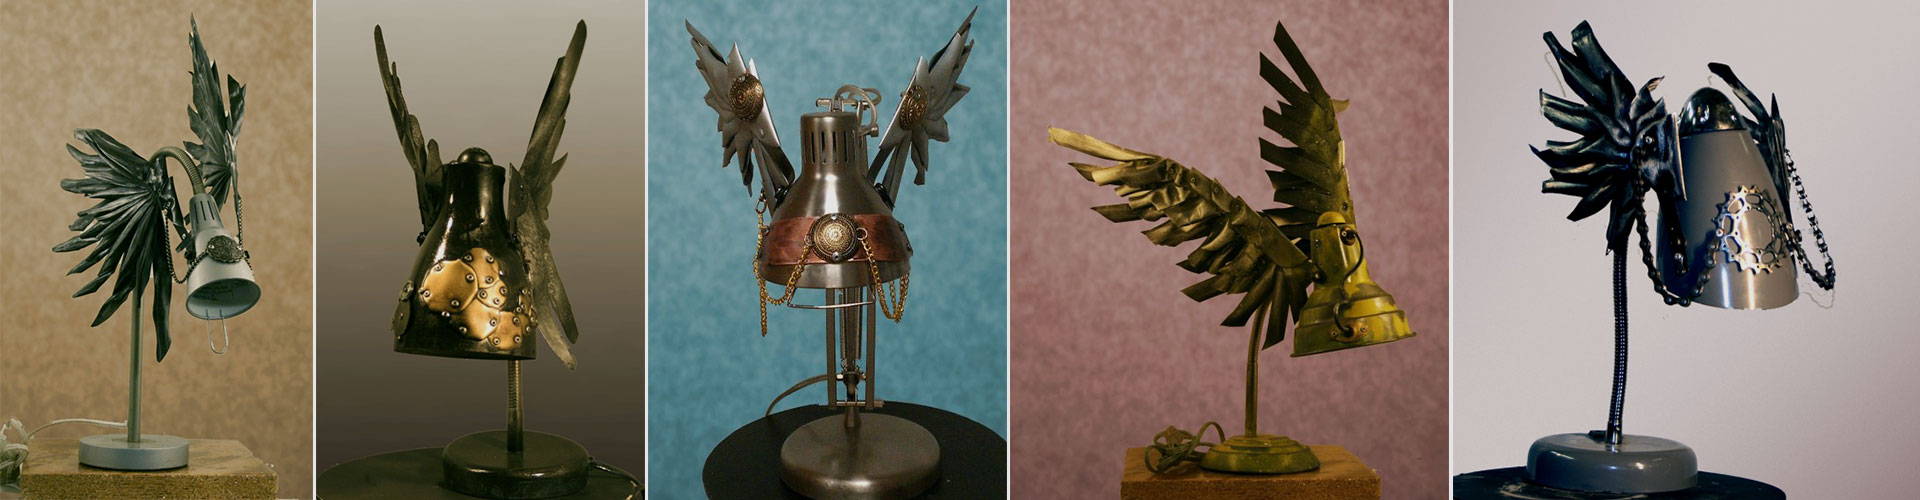 Steampunk Maniacs Flying Lamps